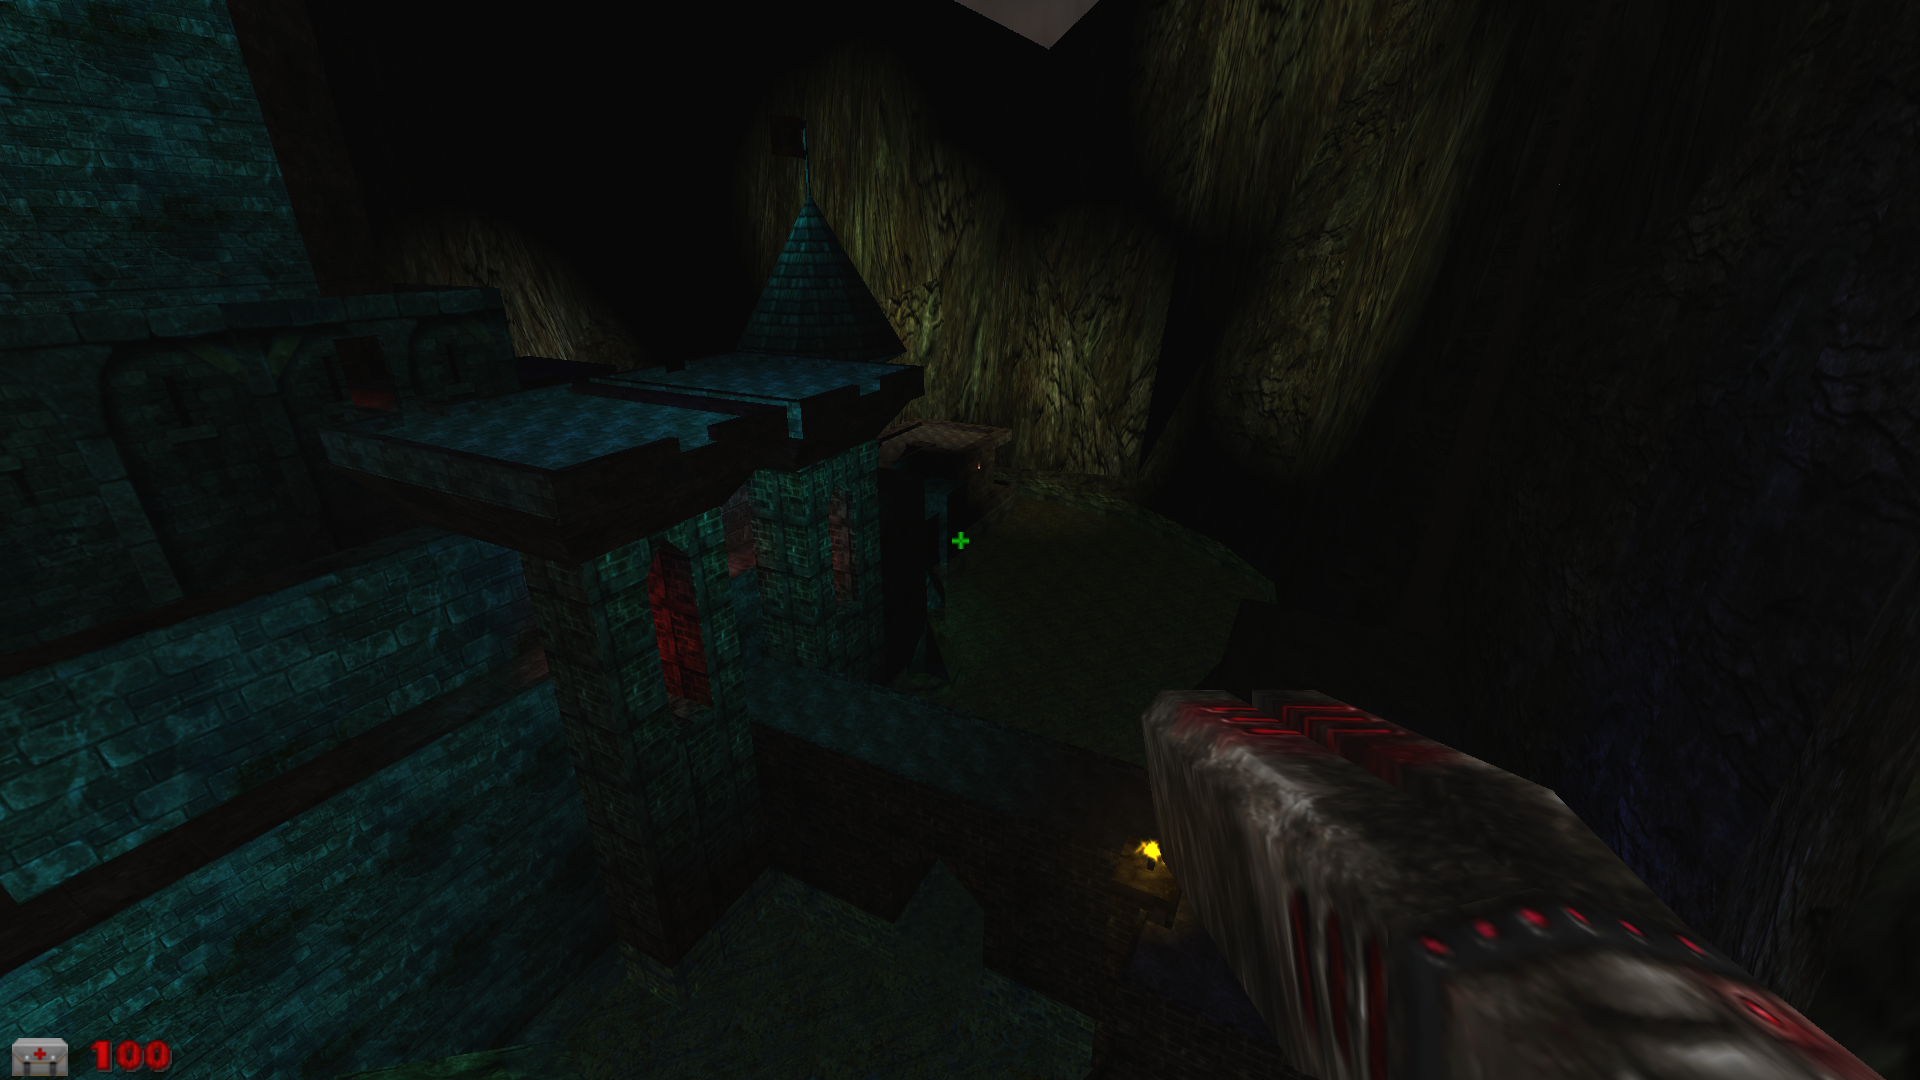 Image 1 - Unreal gold remake in GZDooM engine mod for Doom II - Mod DB